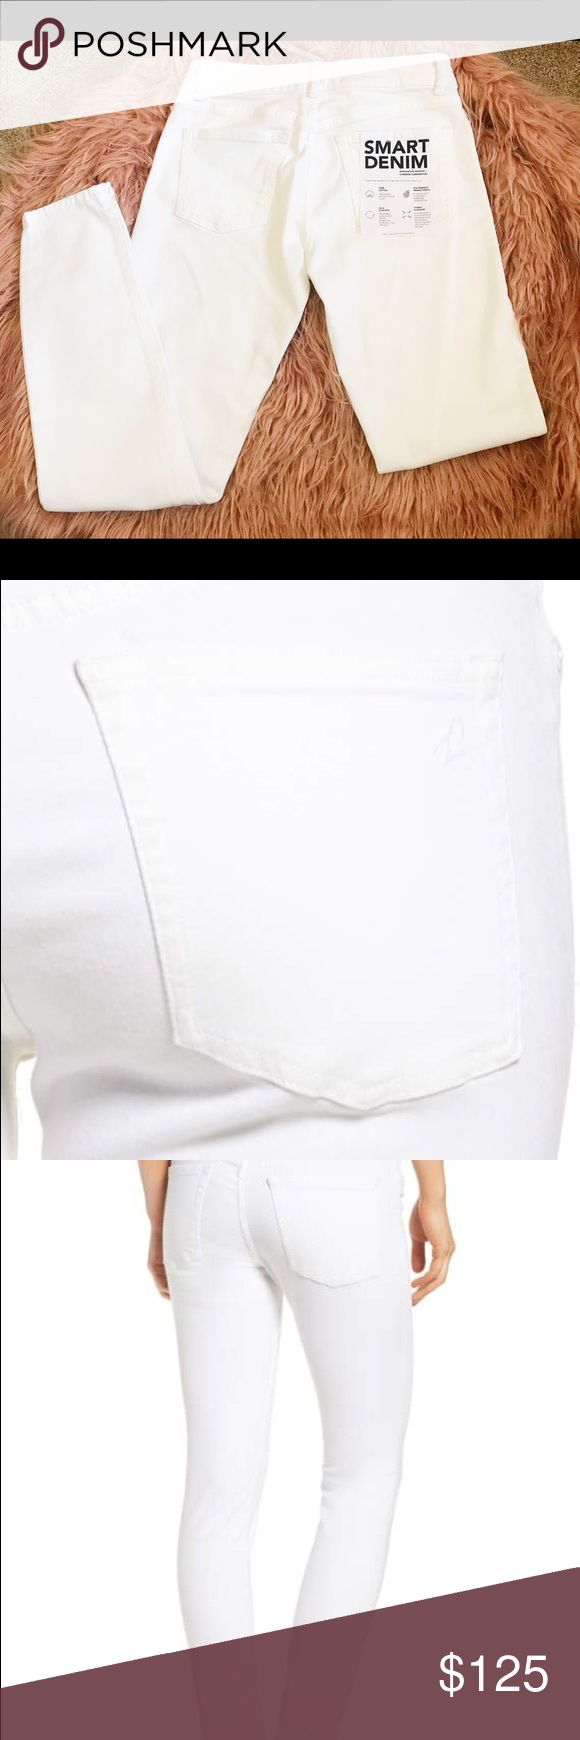 White Denim Women's jeans DL1961 Brand new beautiful white denim DL1961 women jeans! Pure high quality cotton, stretchy white jeans allowing you to comfortably move around in style and best of all these are eco friendly! DL1961 Jeans Skinny